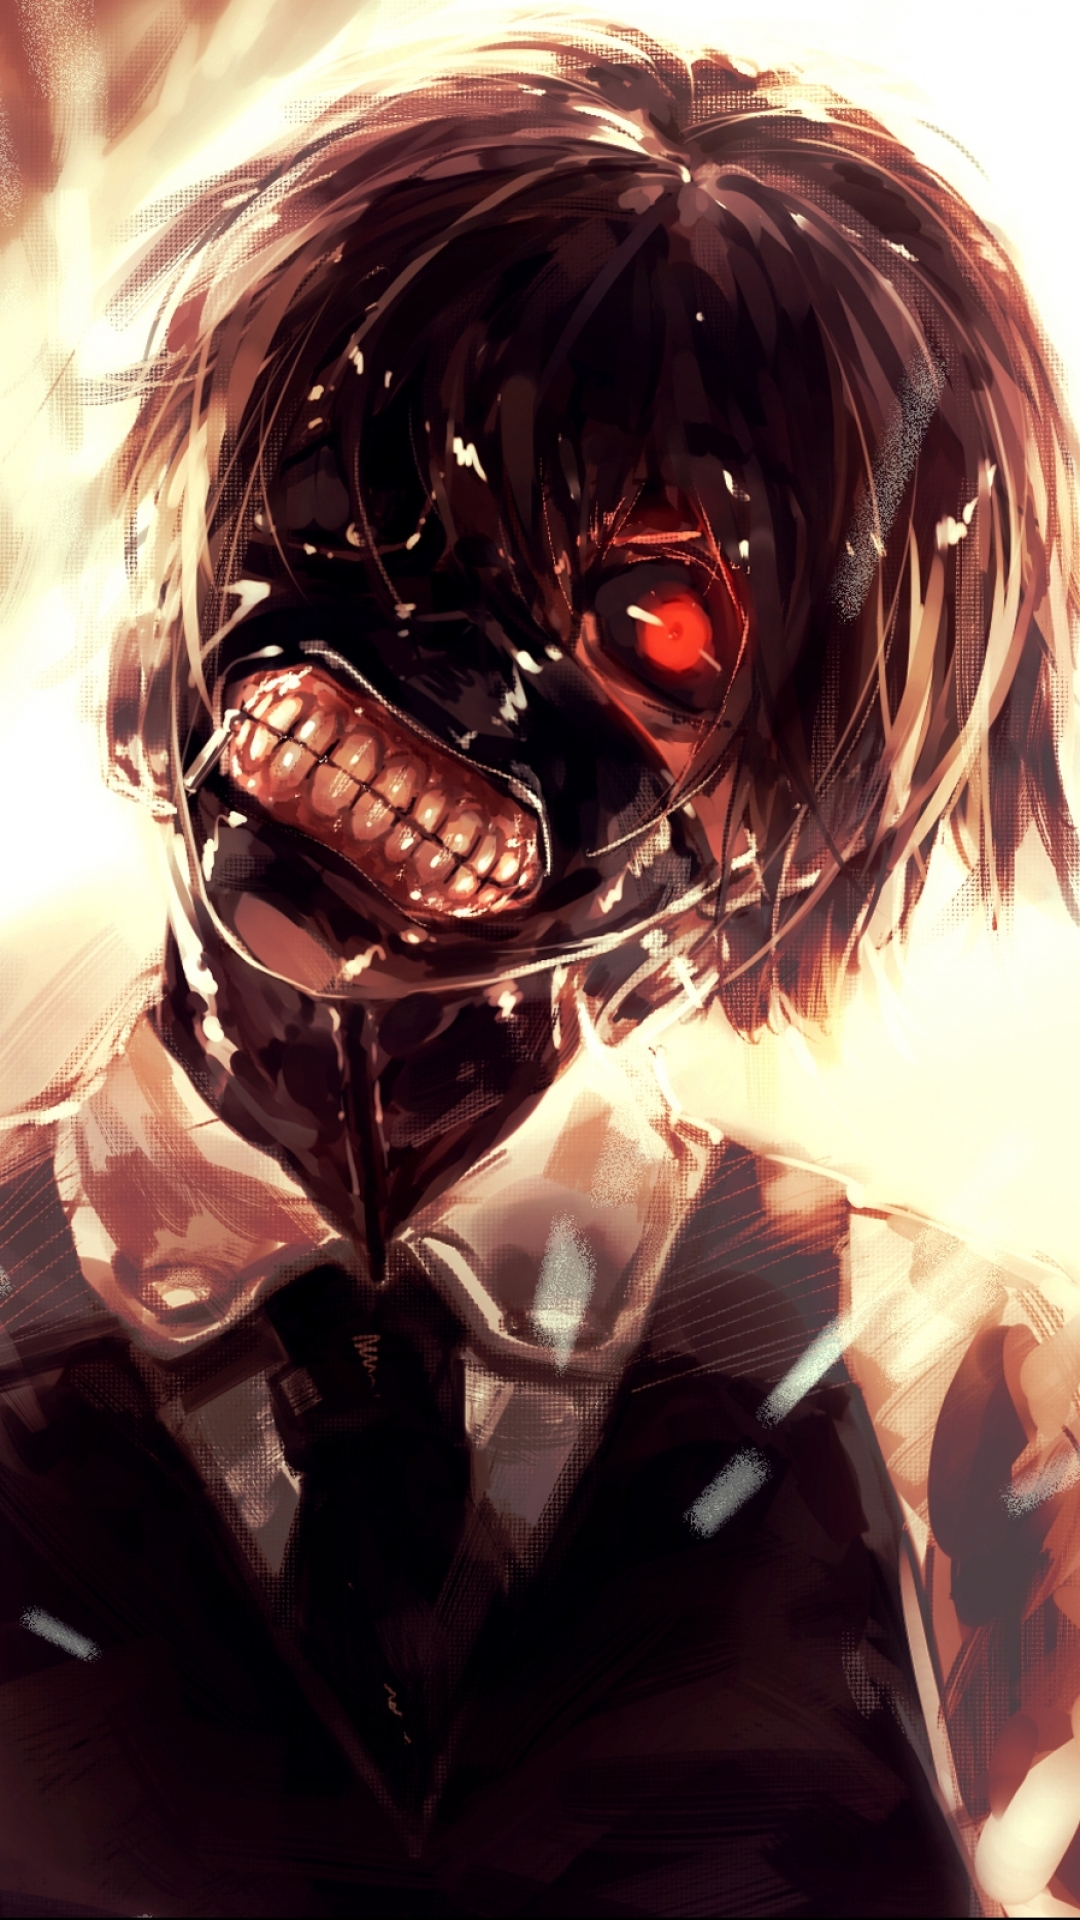 323 Tokyo Ghoul Apple Iphone 6 750x1334 Wallpapers